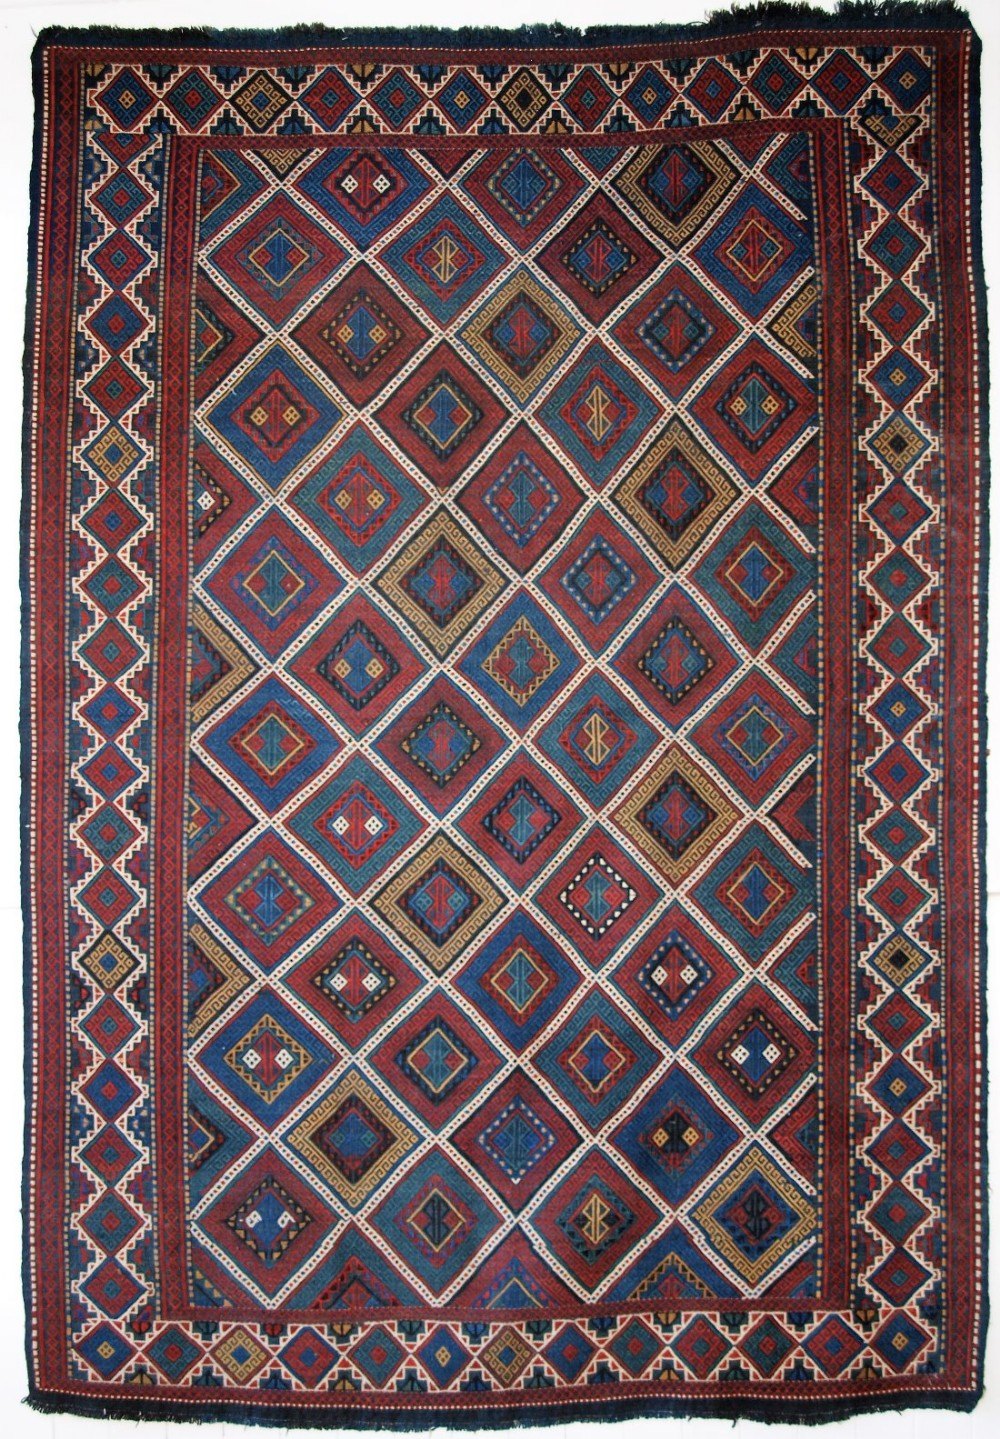 antique caucasian azeri verneh embroidered flatweave outstanding condition circa 1900